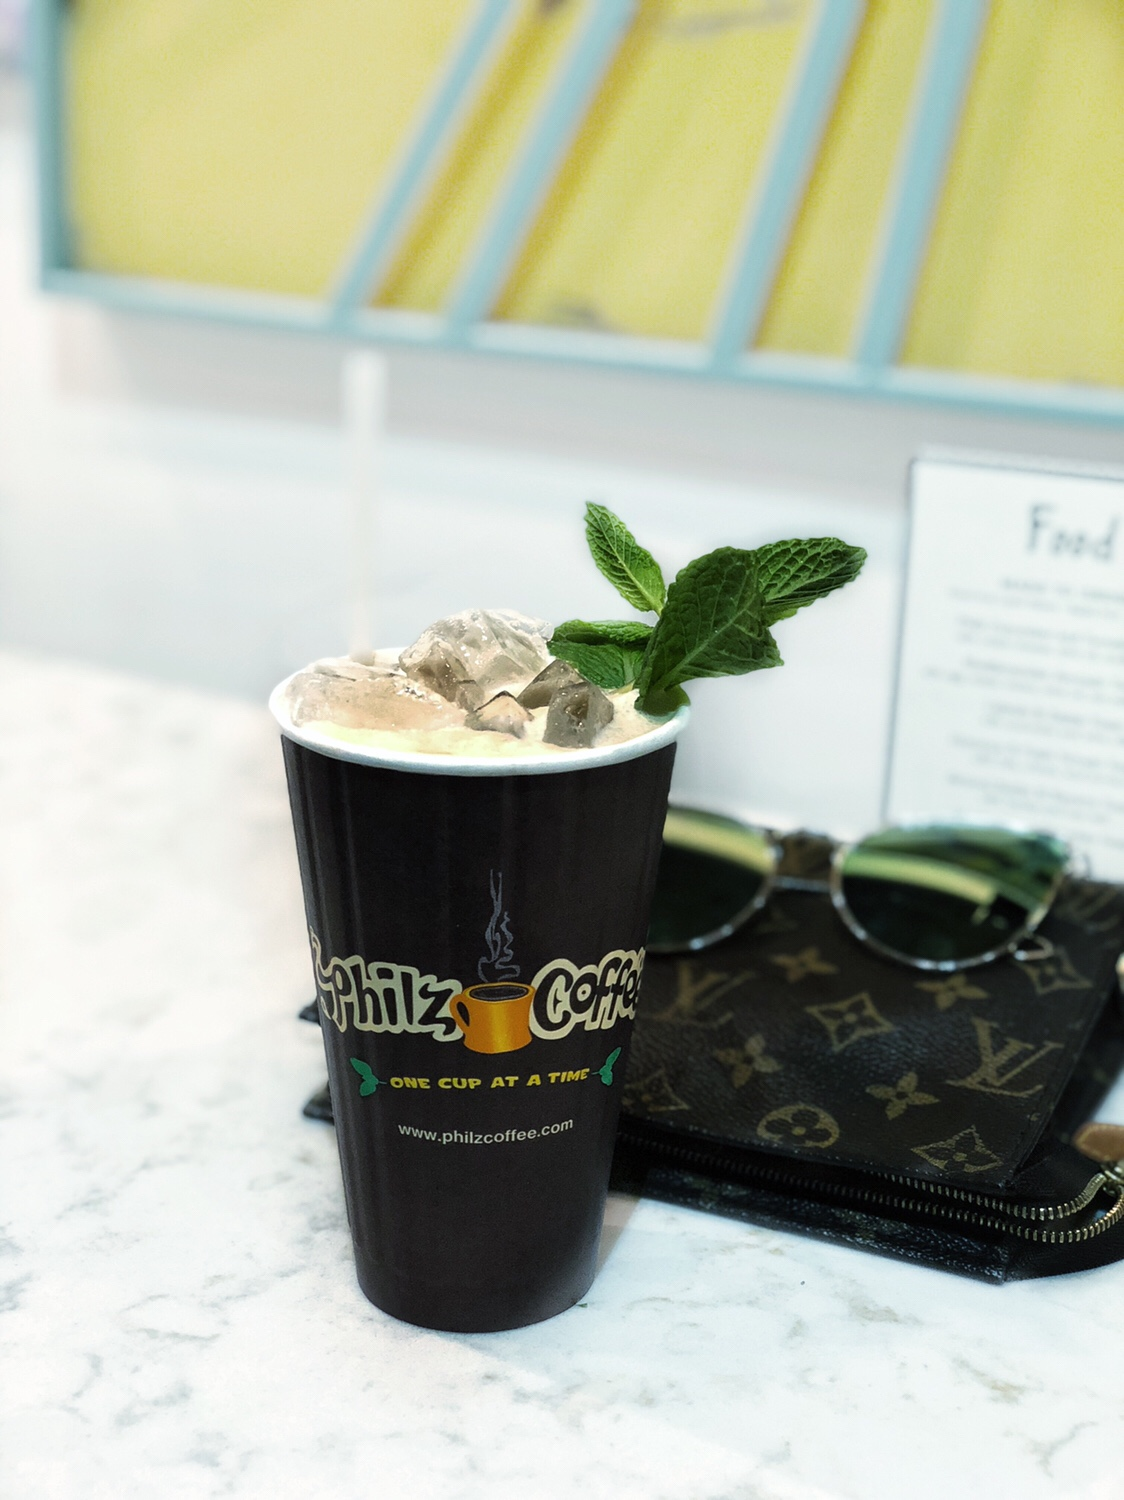 philz coffee mint mojito